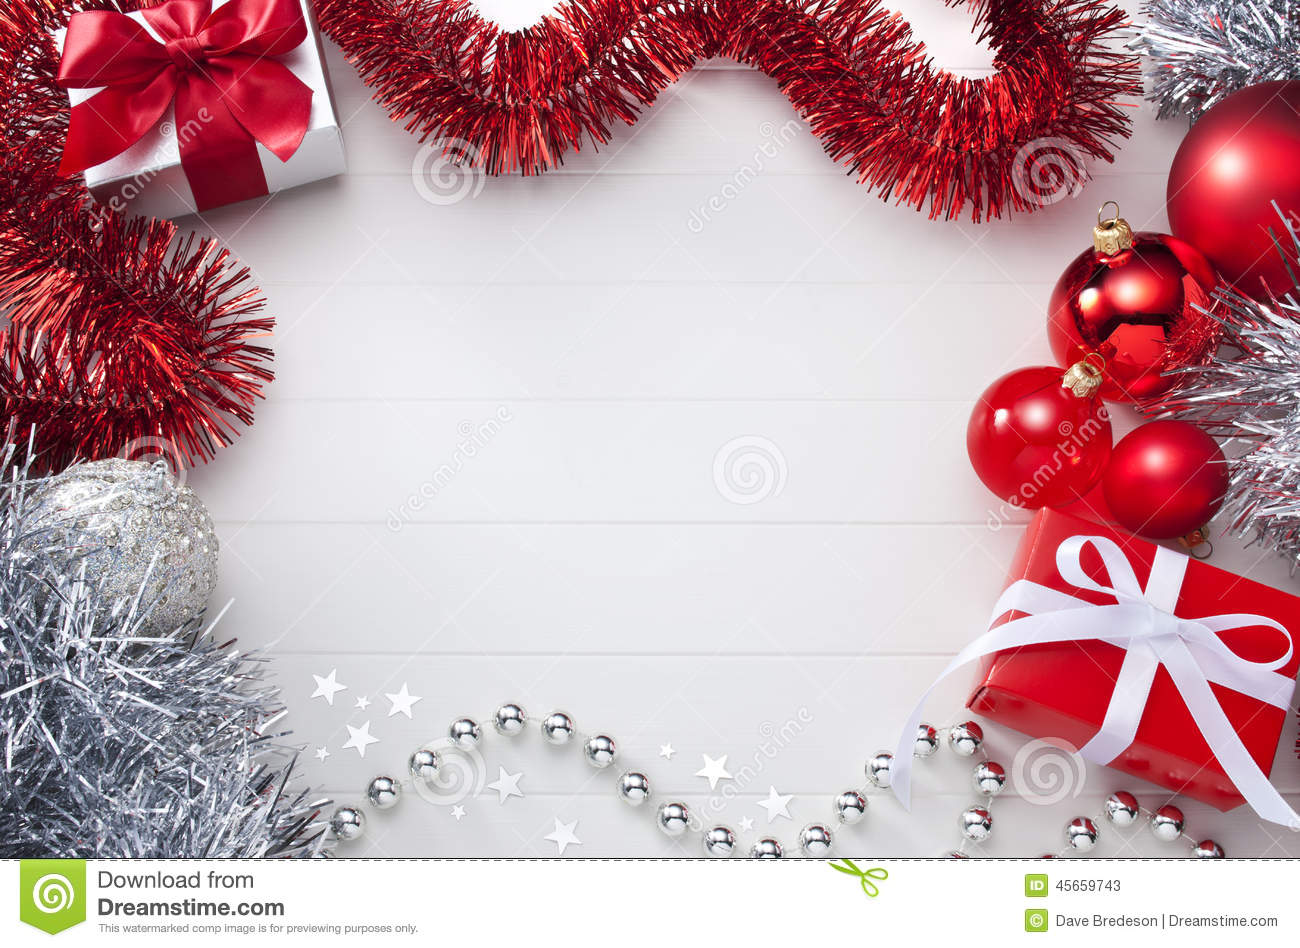 Christmas Stock Photos - Royalty Free Images